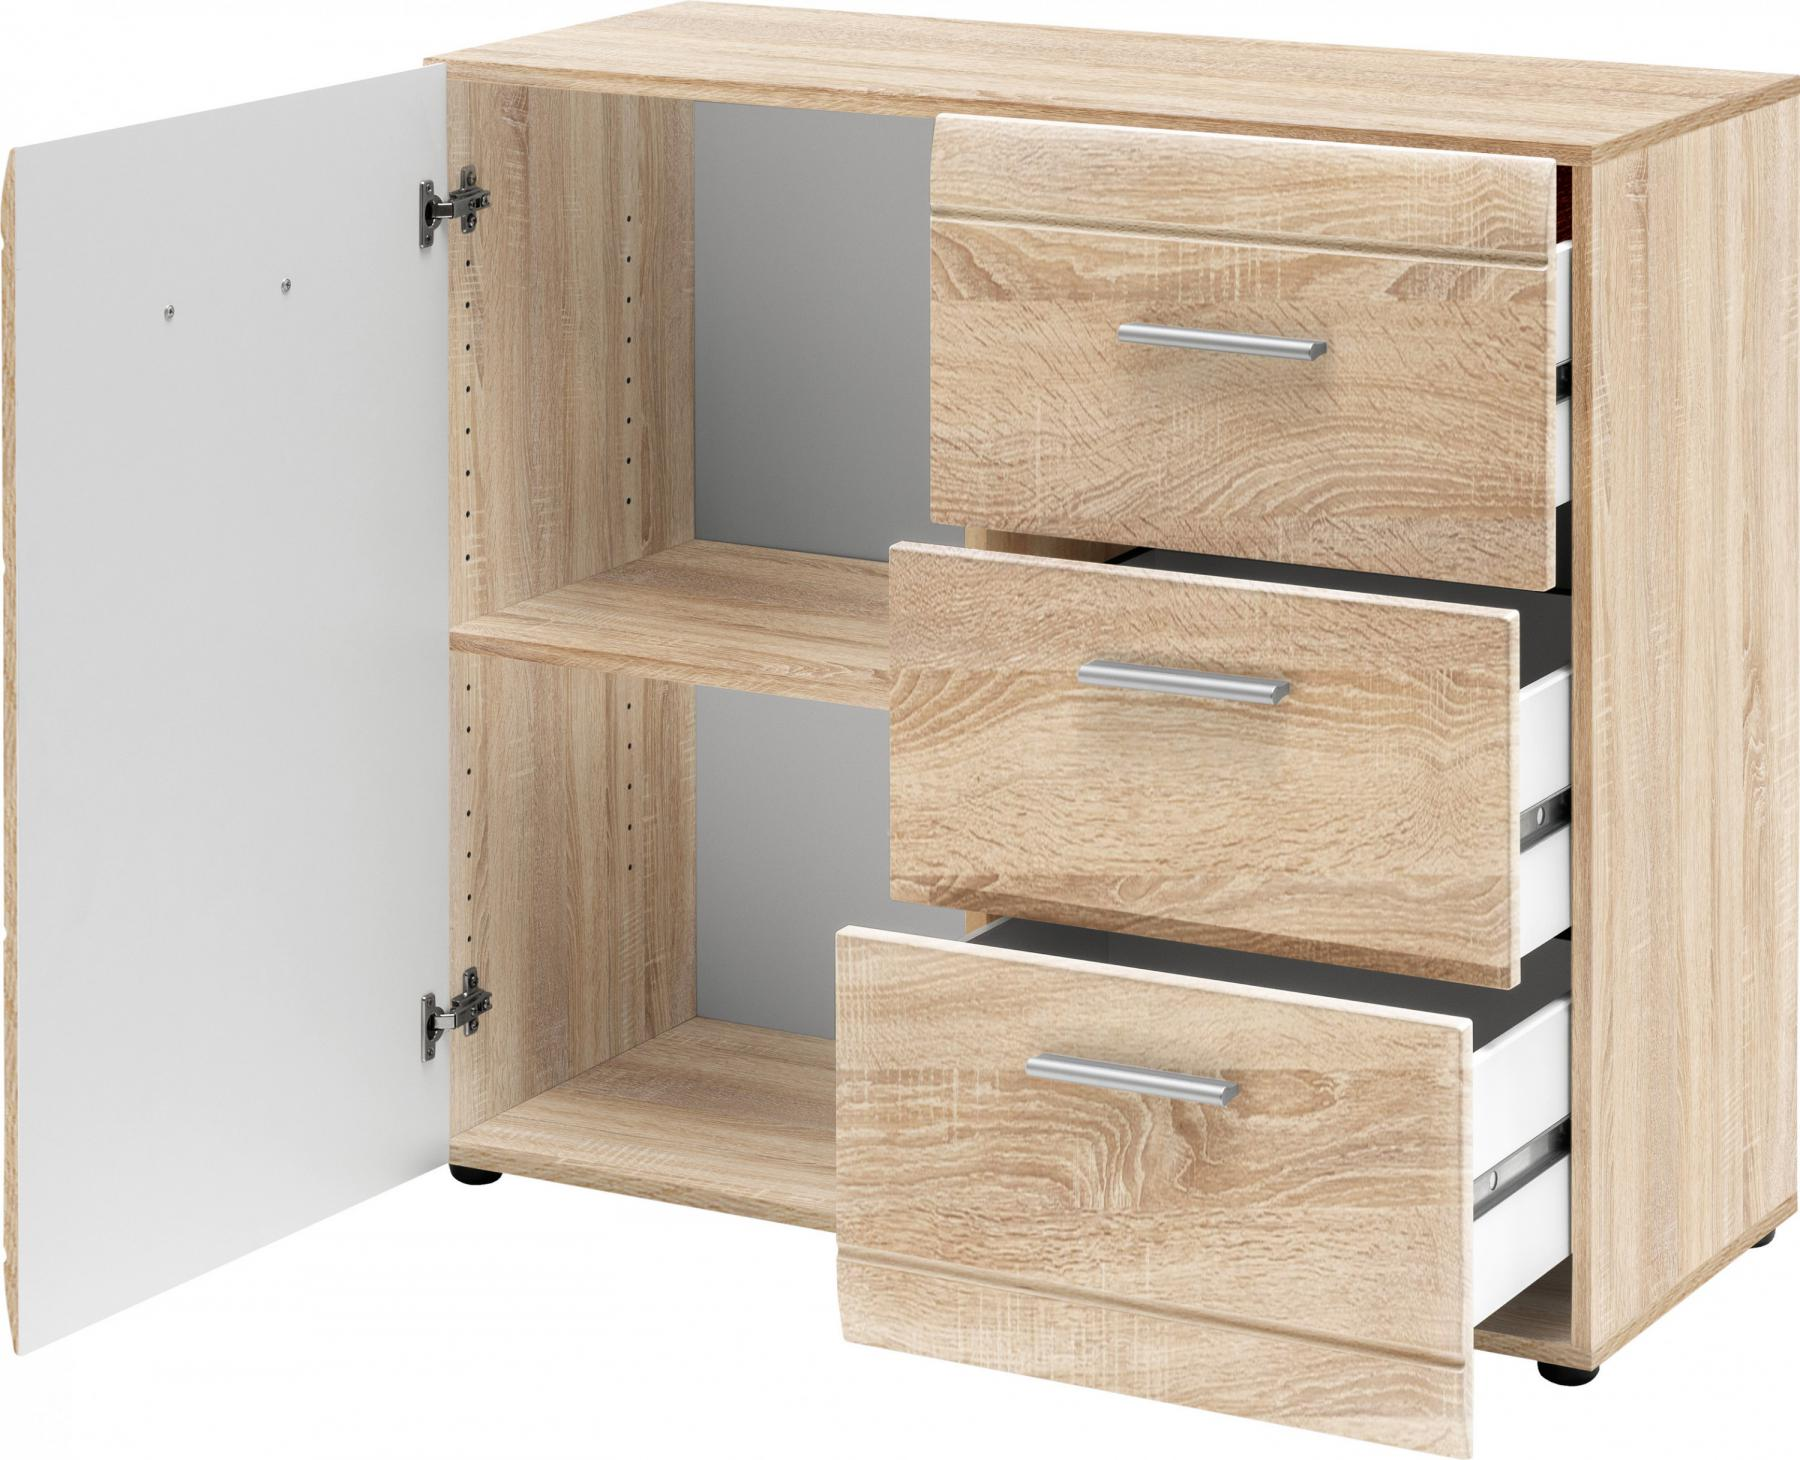 schrank mangoholz mobel mangoholz gros mangoholz regal kommode schrank esszimmer. Black Bedroom Furniture Sets. Home Design Ideas